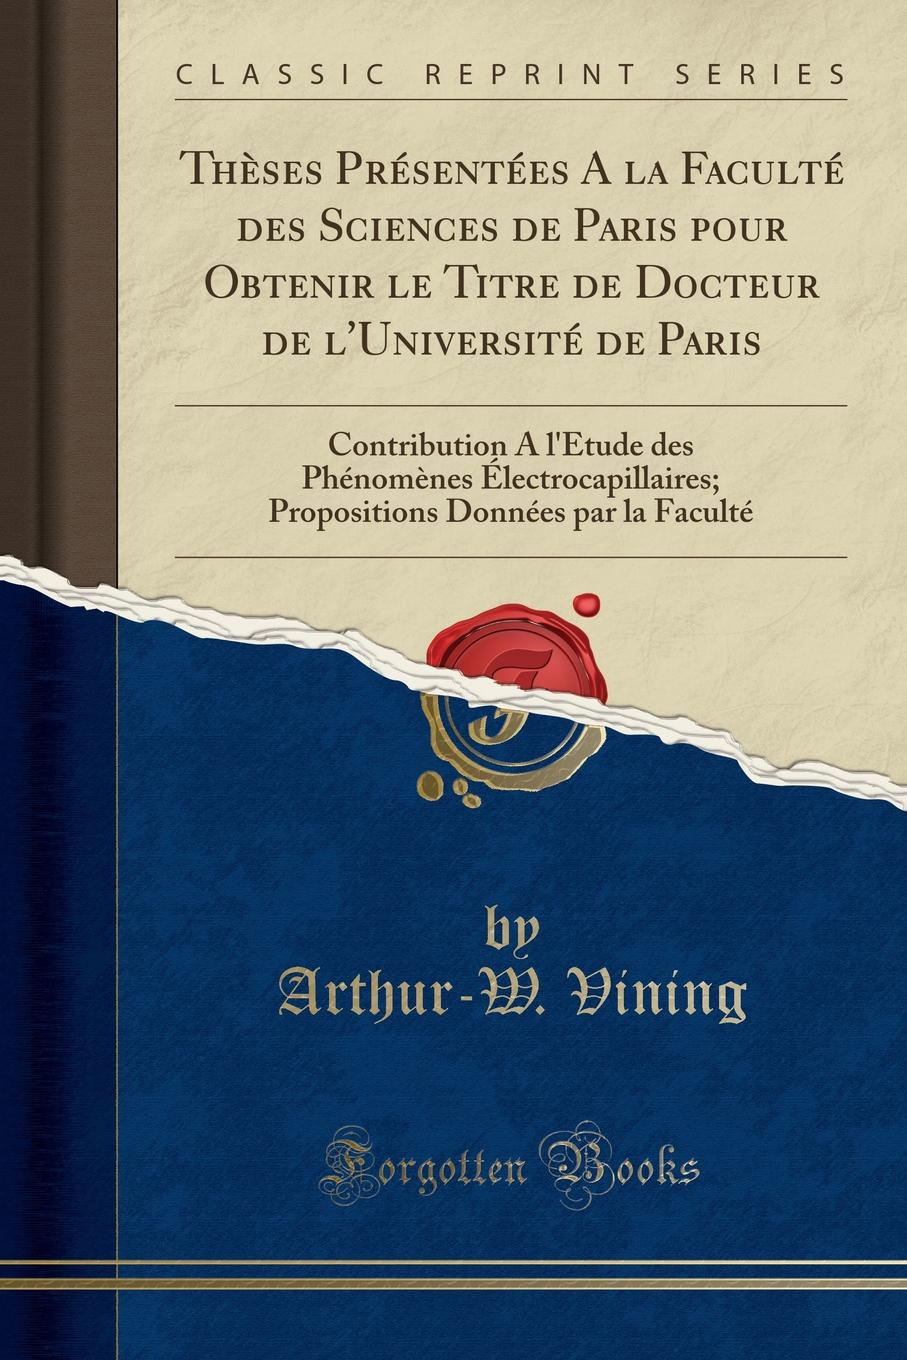 Theses Presentees A la Faculte des Sciences de Paris pour Obtenir le Titre de Docteur de l.Universite de Paris. Contribution A l.Etude des Phenomenes Electrocapillaires; Propositions Donnees par la Faculte (Classic Reprint)